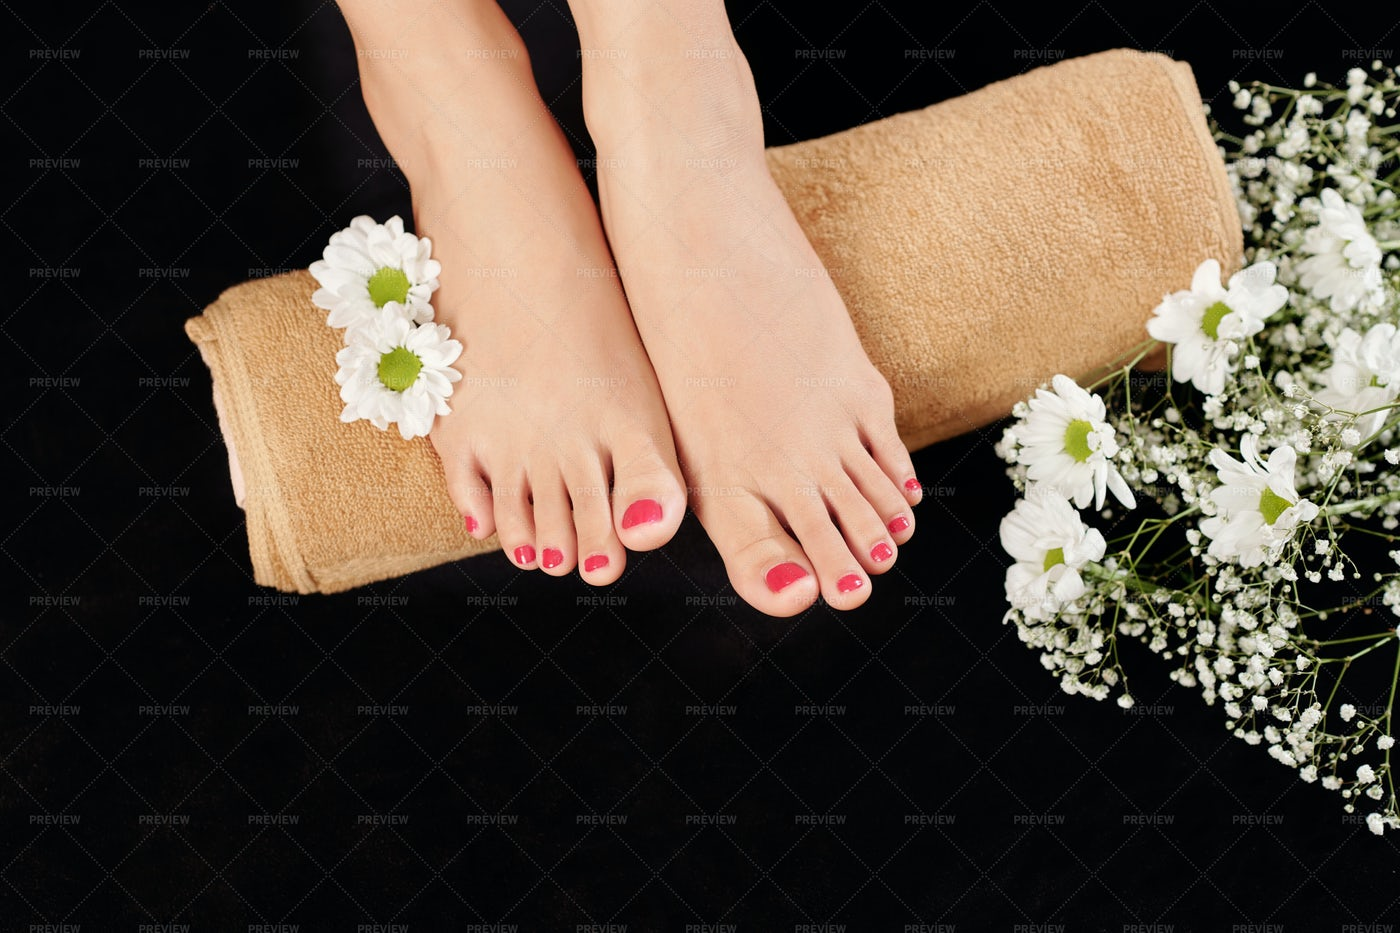 Manicured Feet On A Towel: Stock Photos